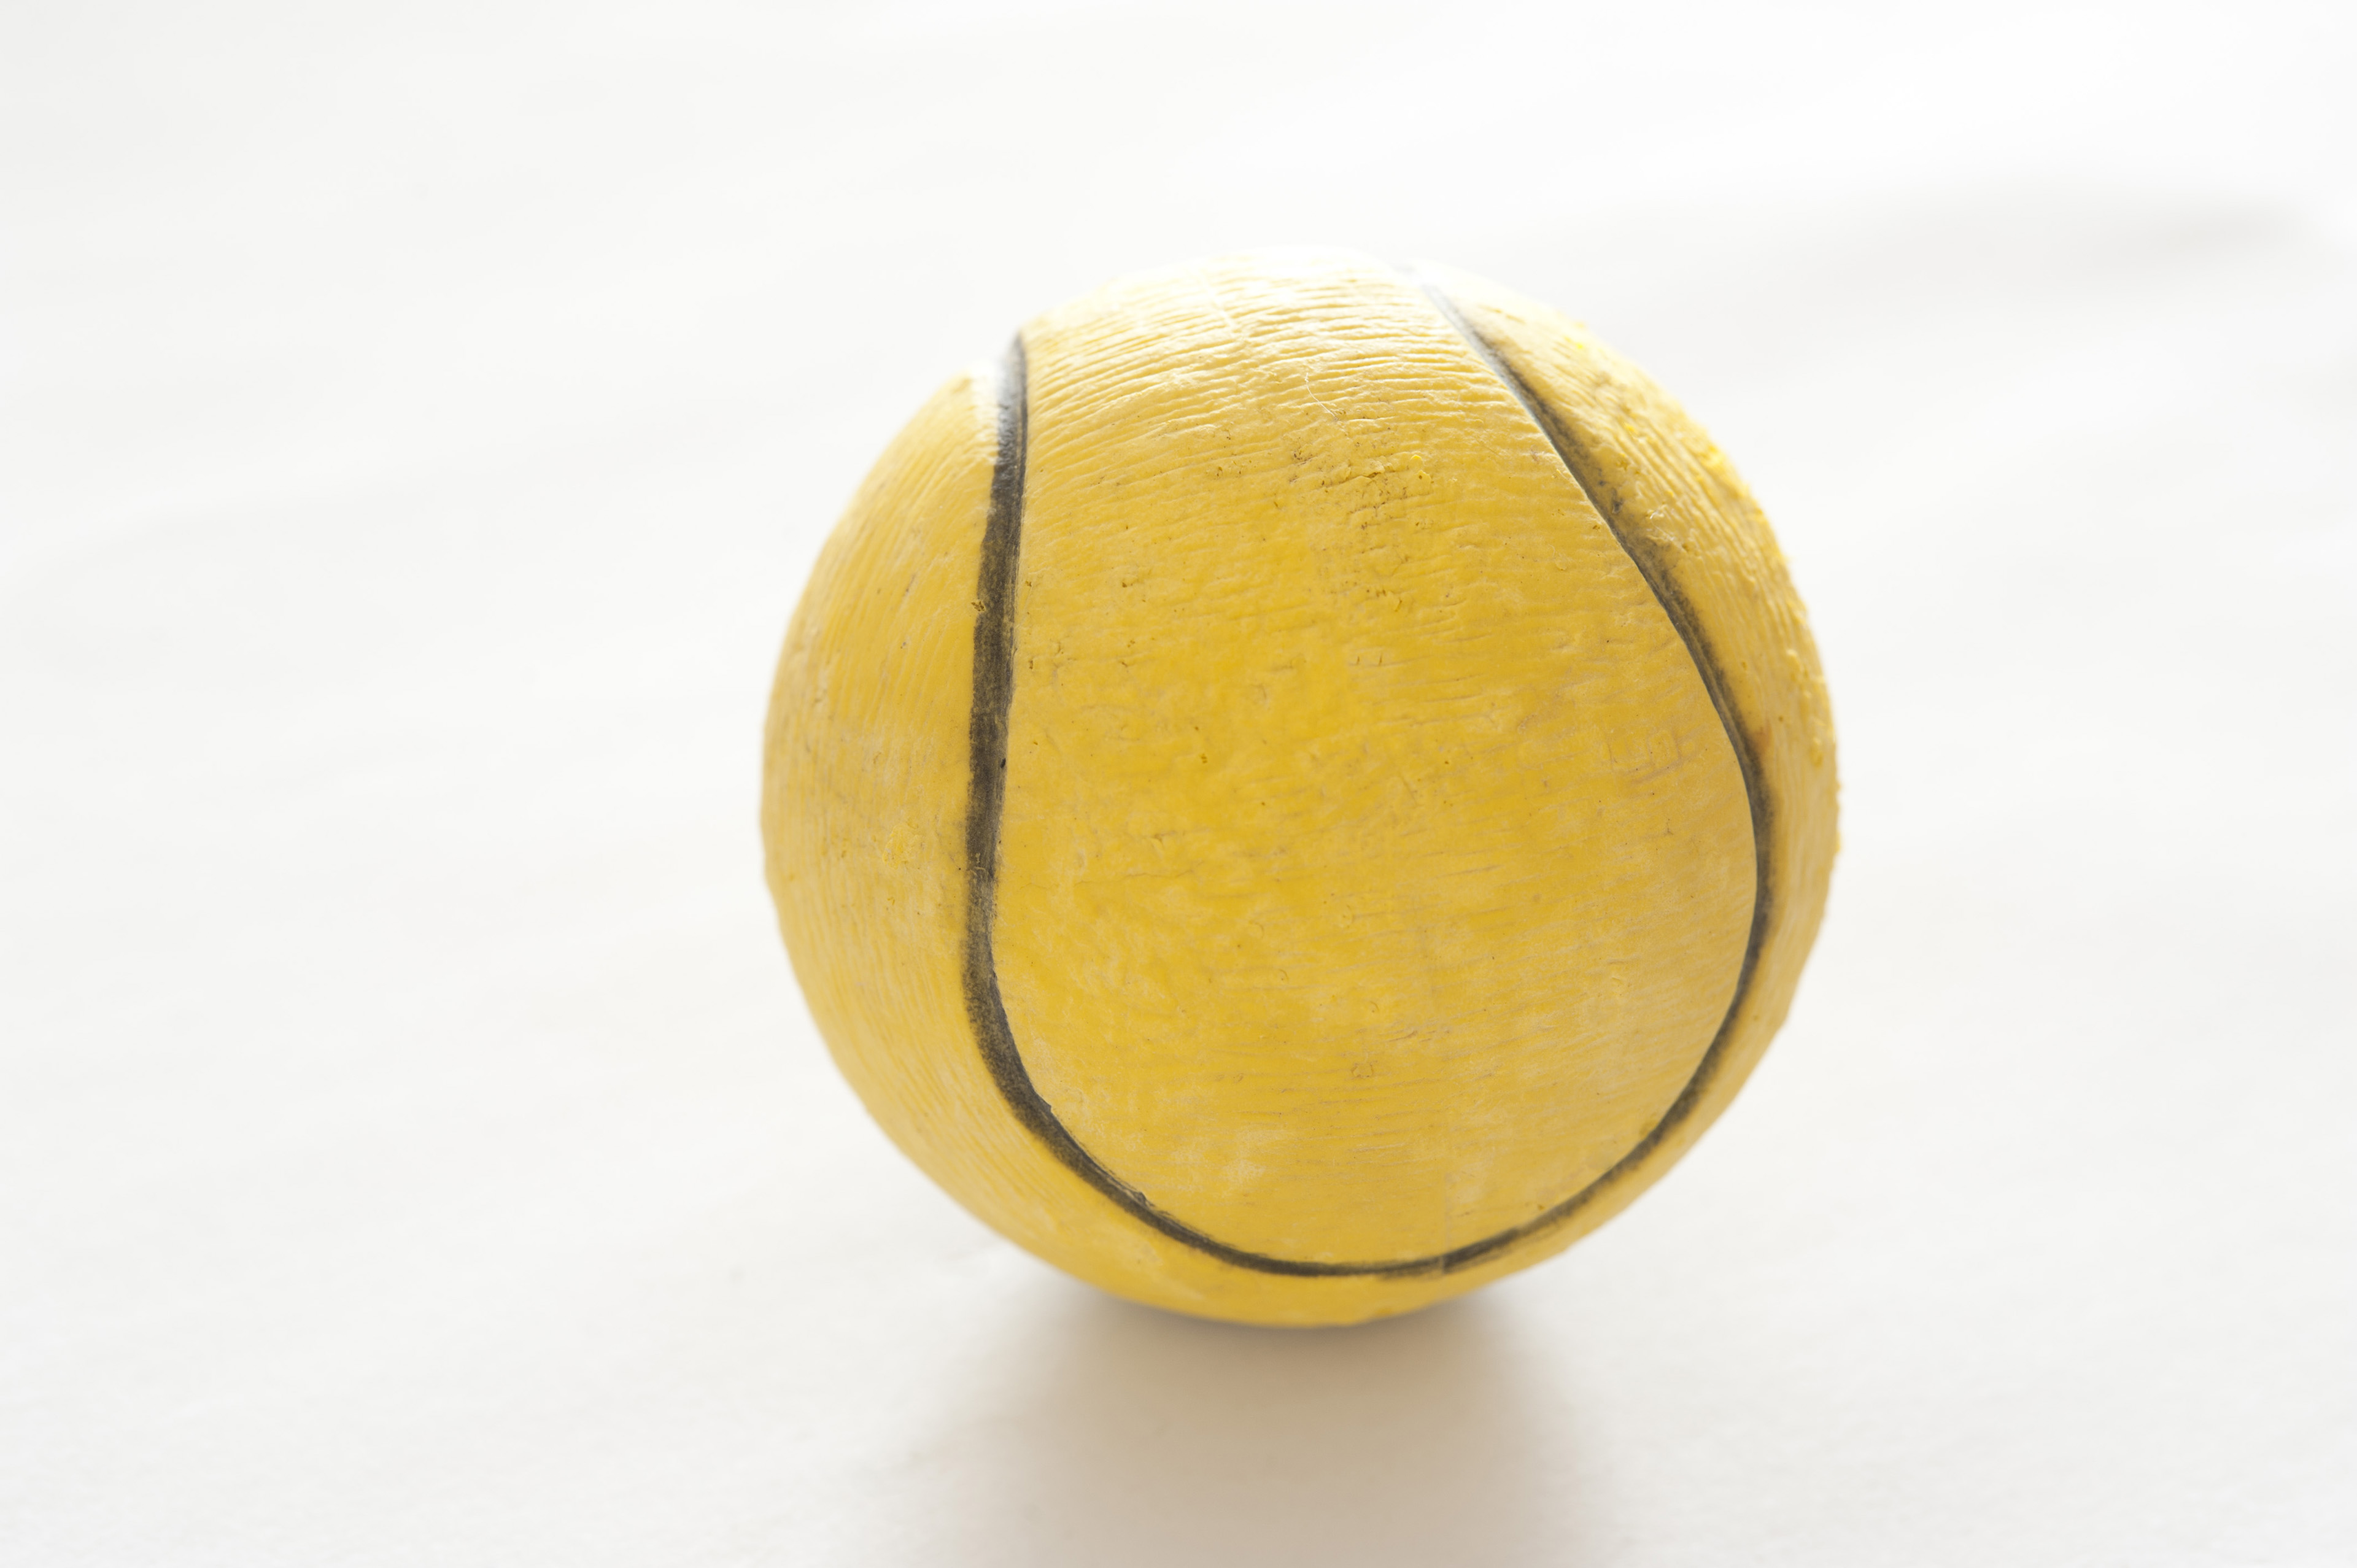 Used yellow rubber tennis ball for playing on a court backlit on a white background, close up view